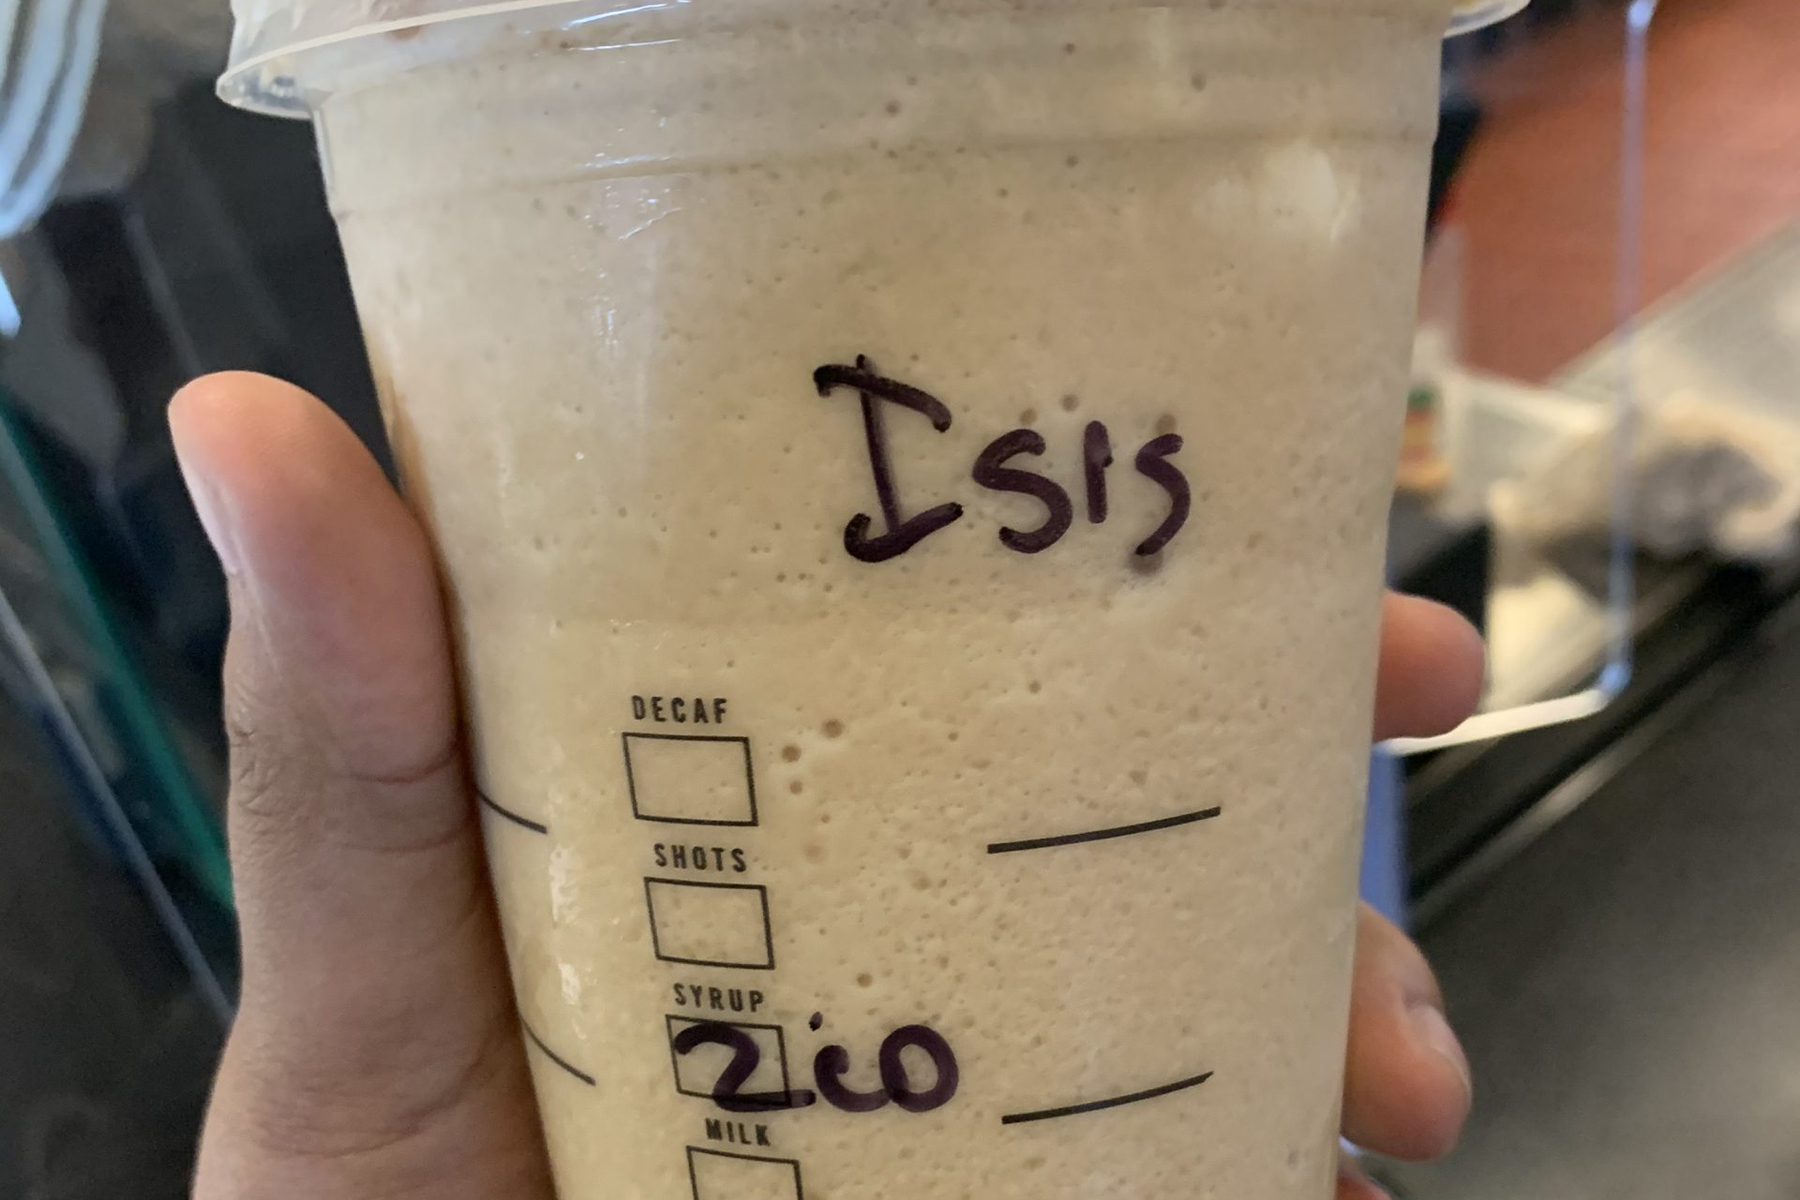 A Muslim Woman Ordered A Drink At Starbucks. The Barista Wrote 'isis' On Her Cup. photo